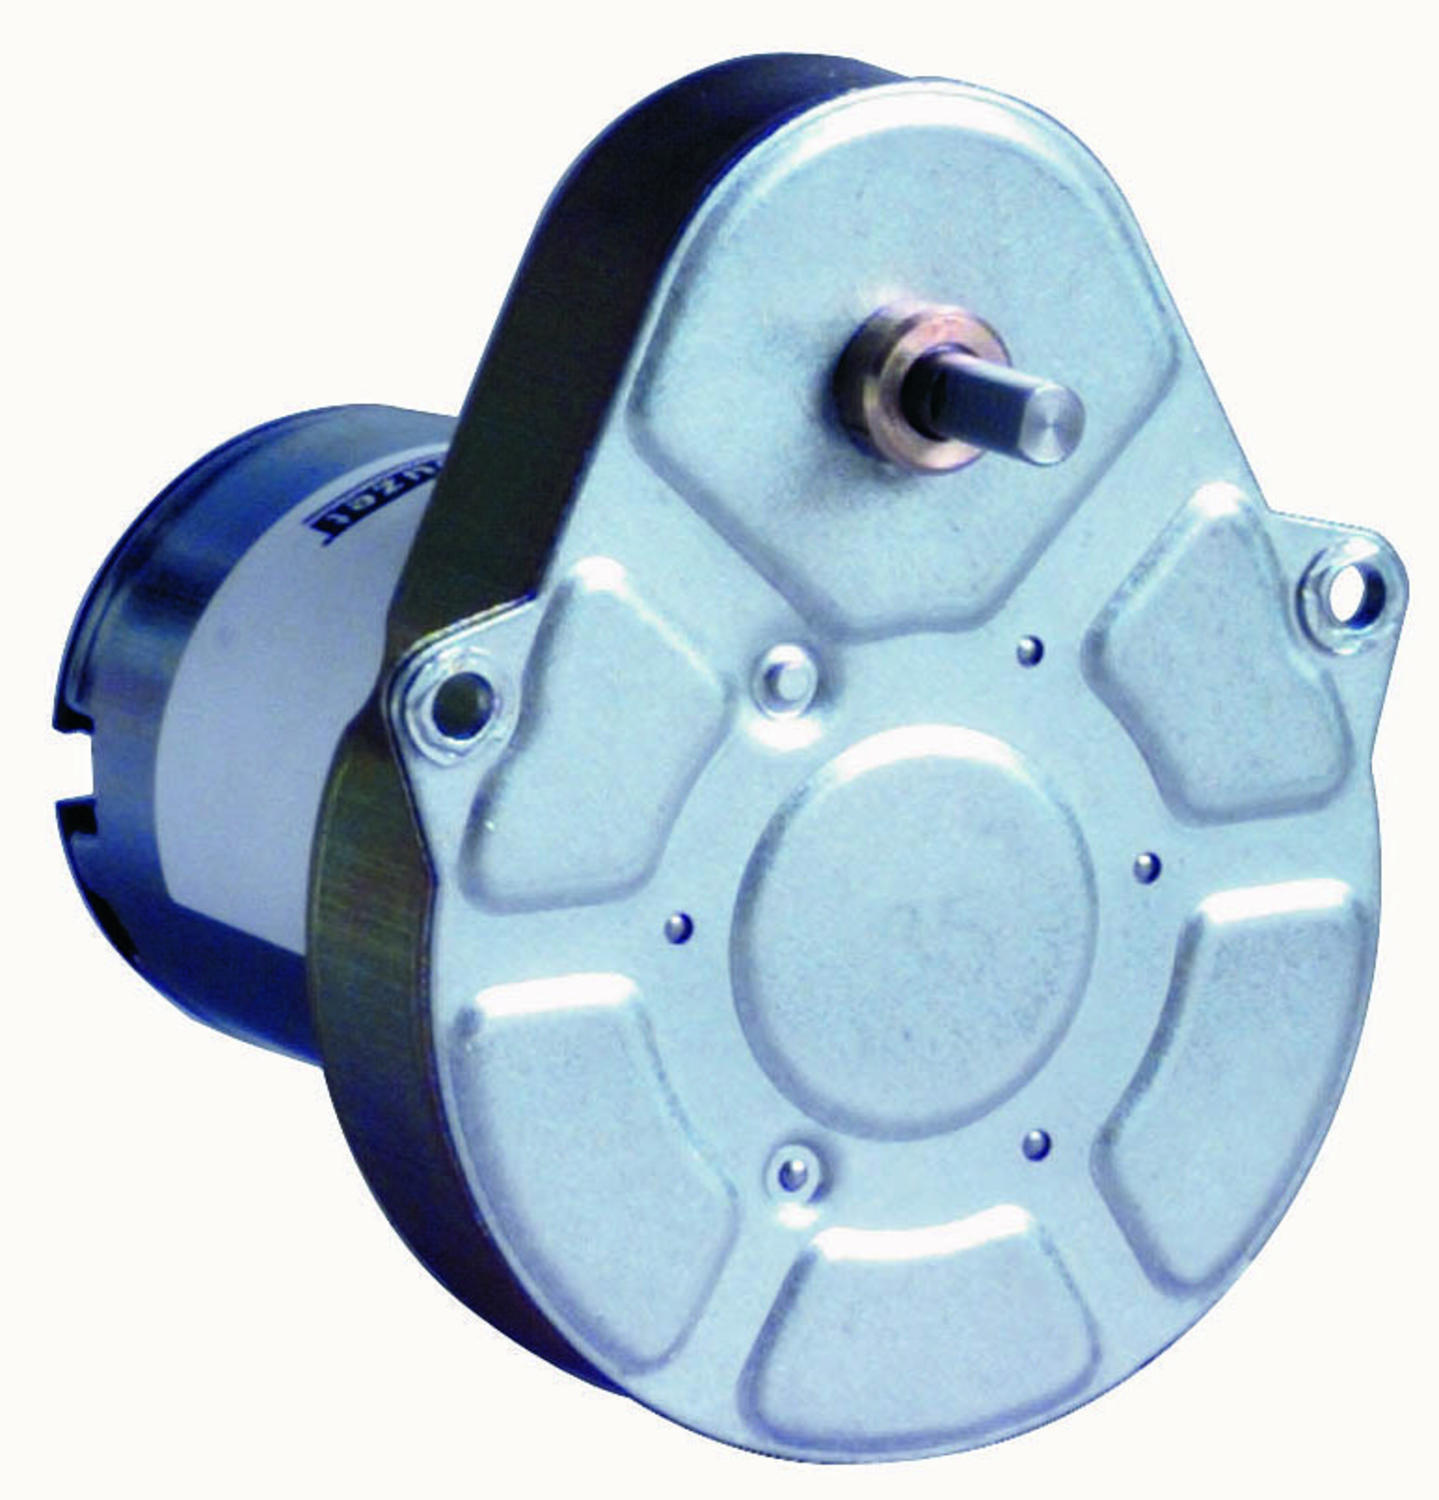 82861xxx DC motor with spur gearbox - Industrial DC Series